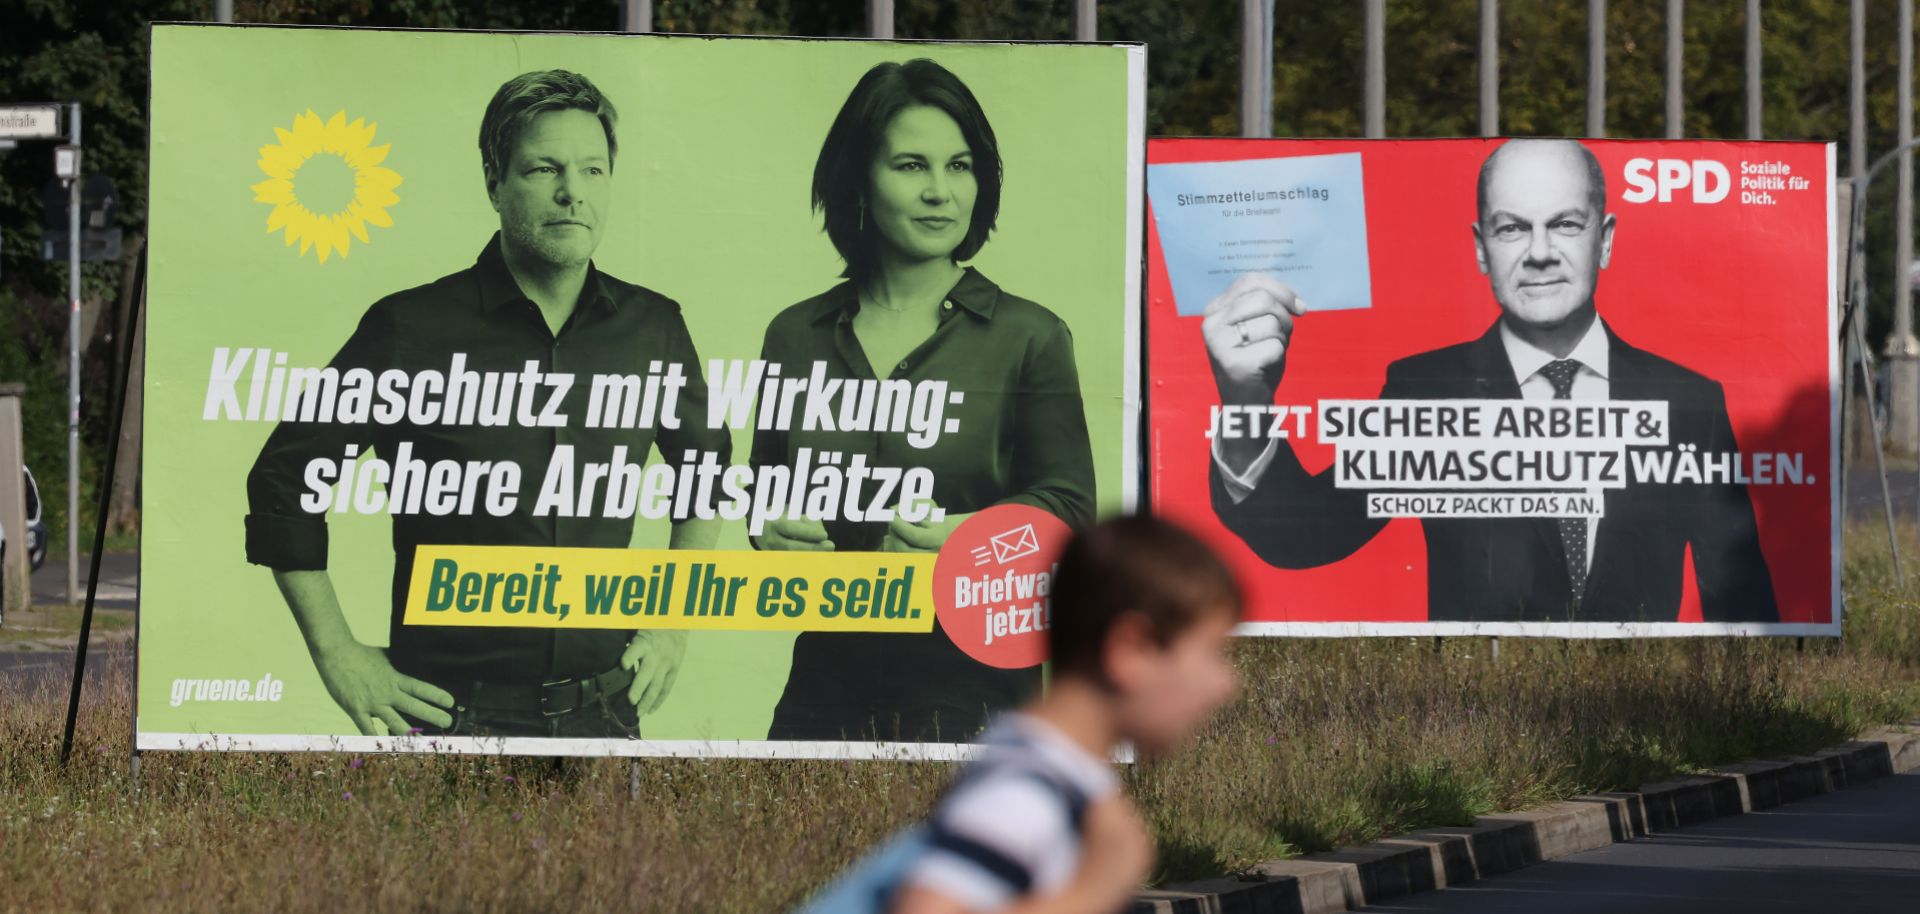 Campaign billboards in Berlin show the chancellor candidates for Germany's Green party (left) and Social Democratic Party on Aug. 24, 2021.